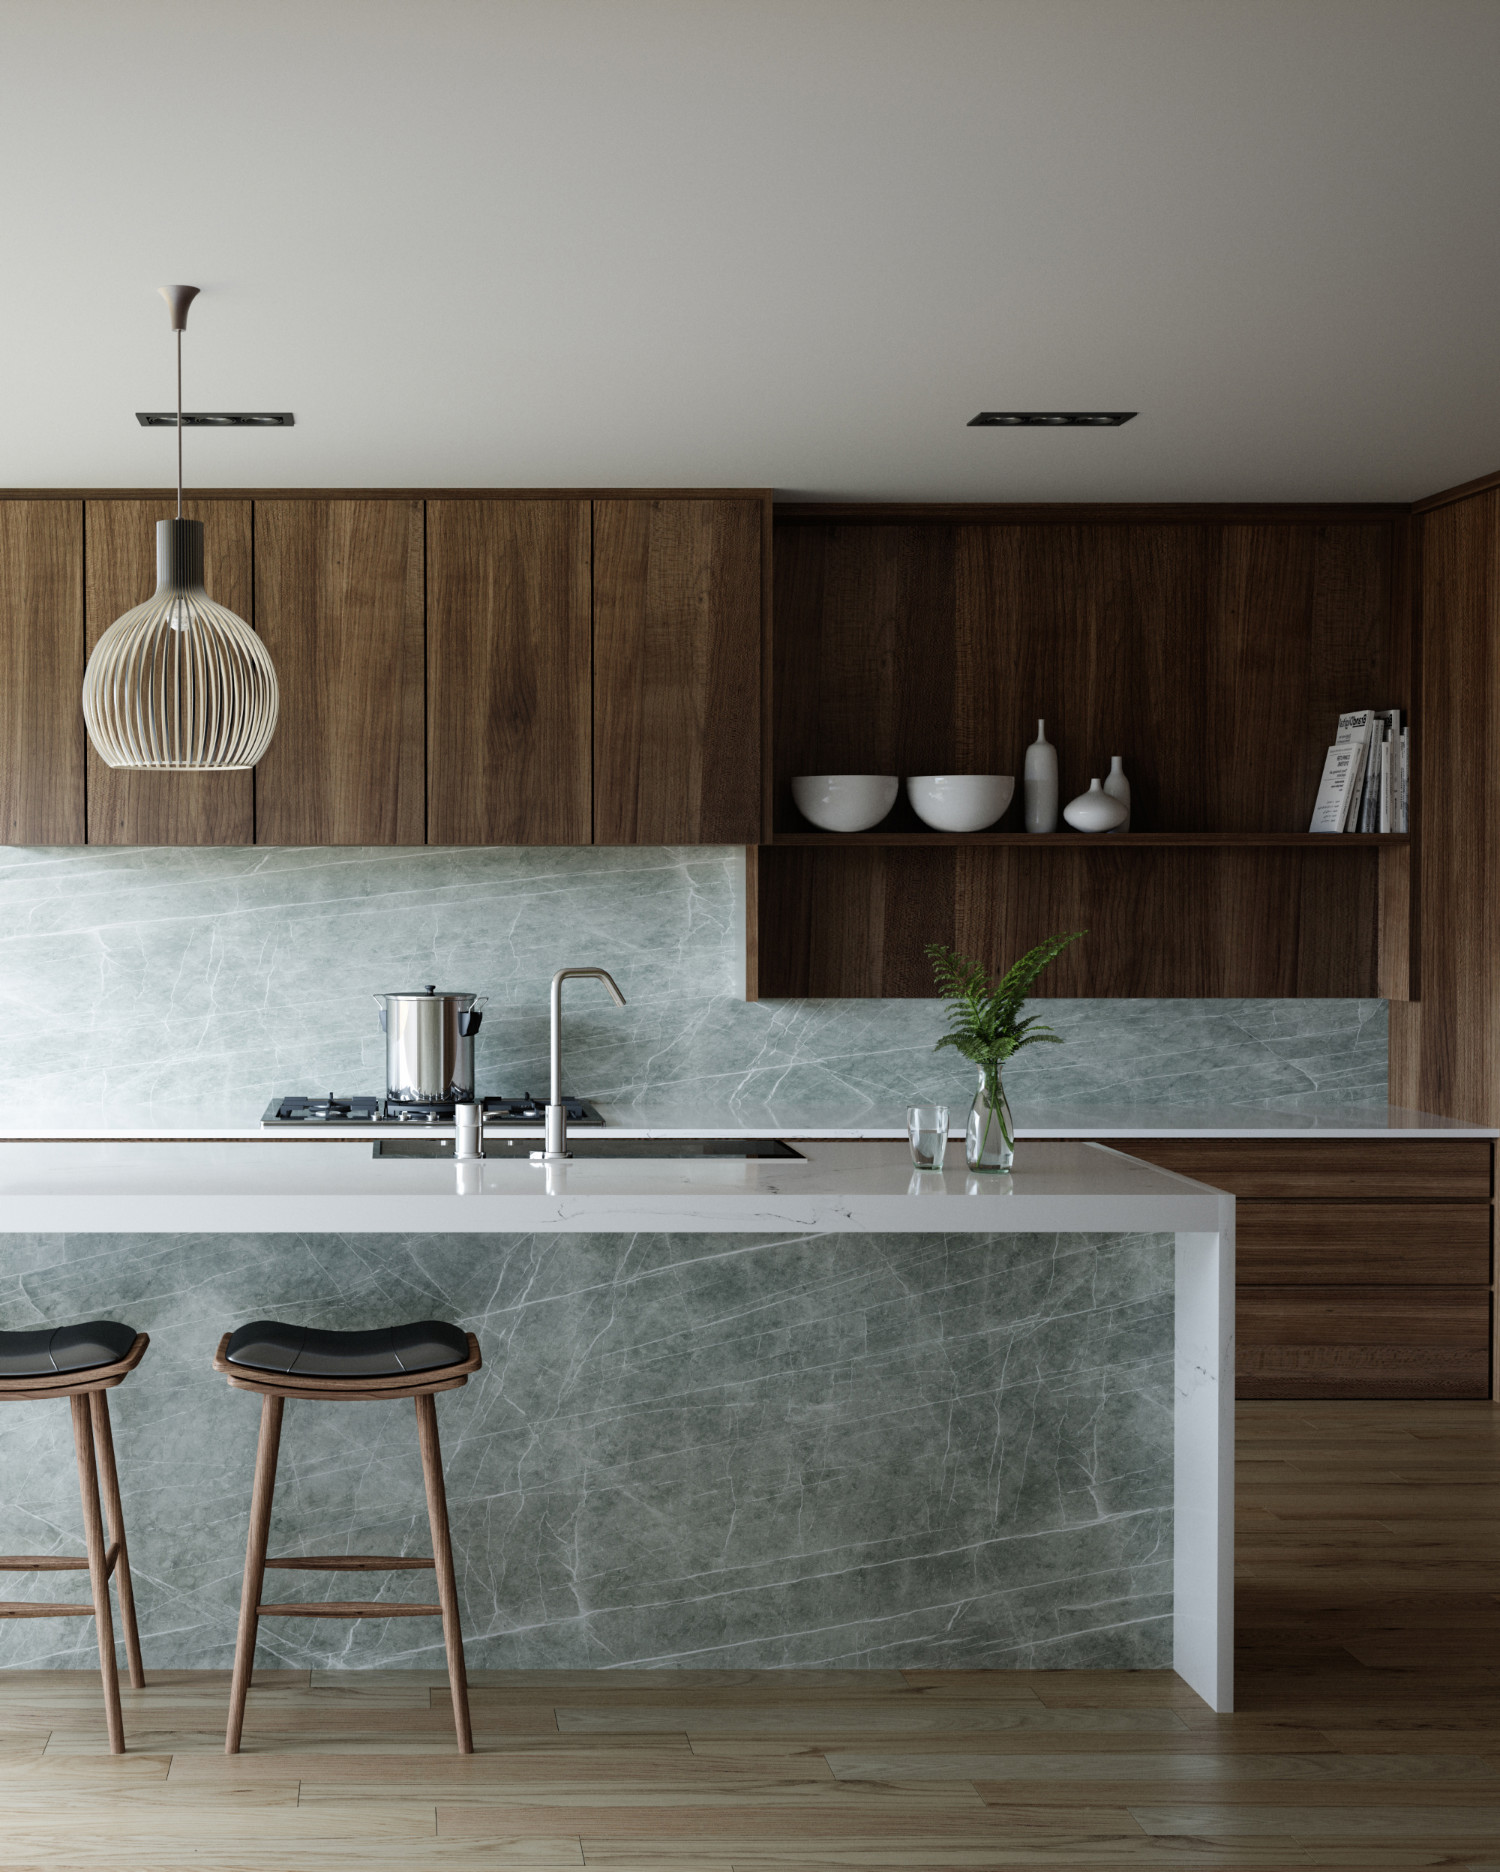 Neolith Sintered Stone (Spain)